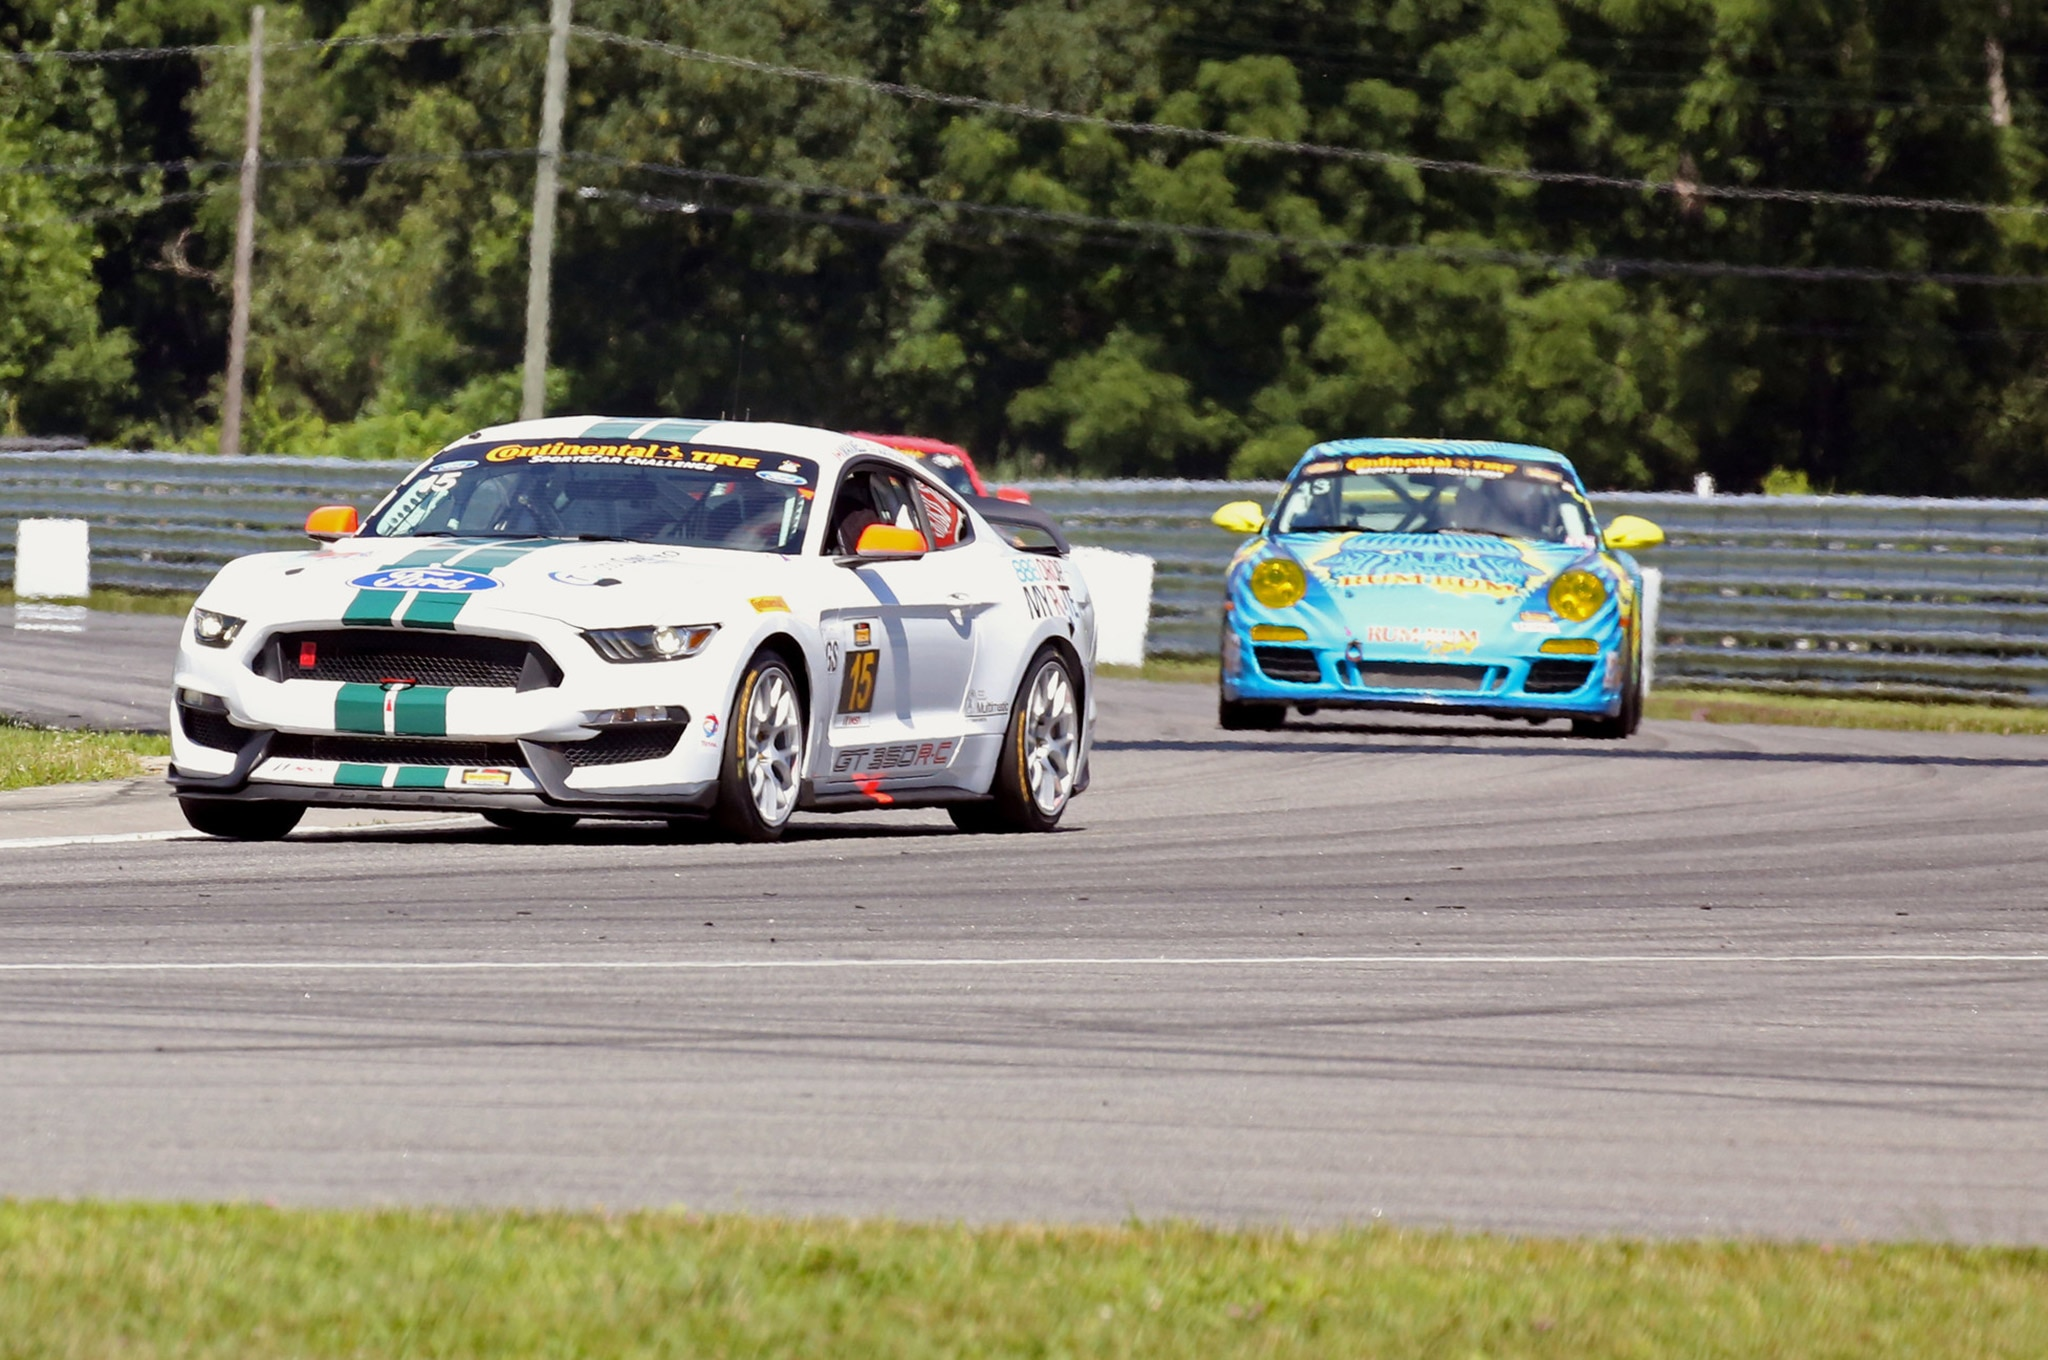 Shelby Gt350r C Takes Second Win At Lime Rock 01